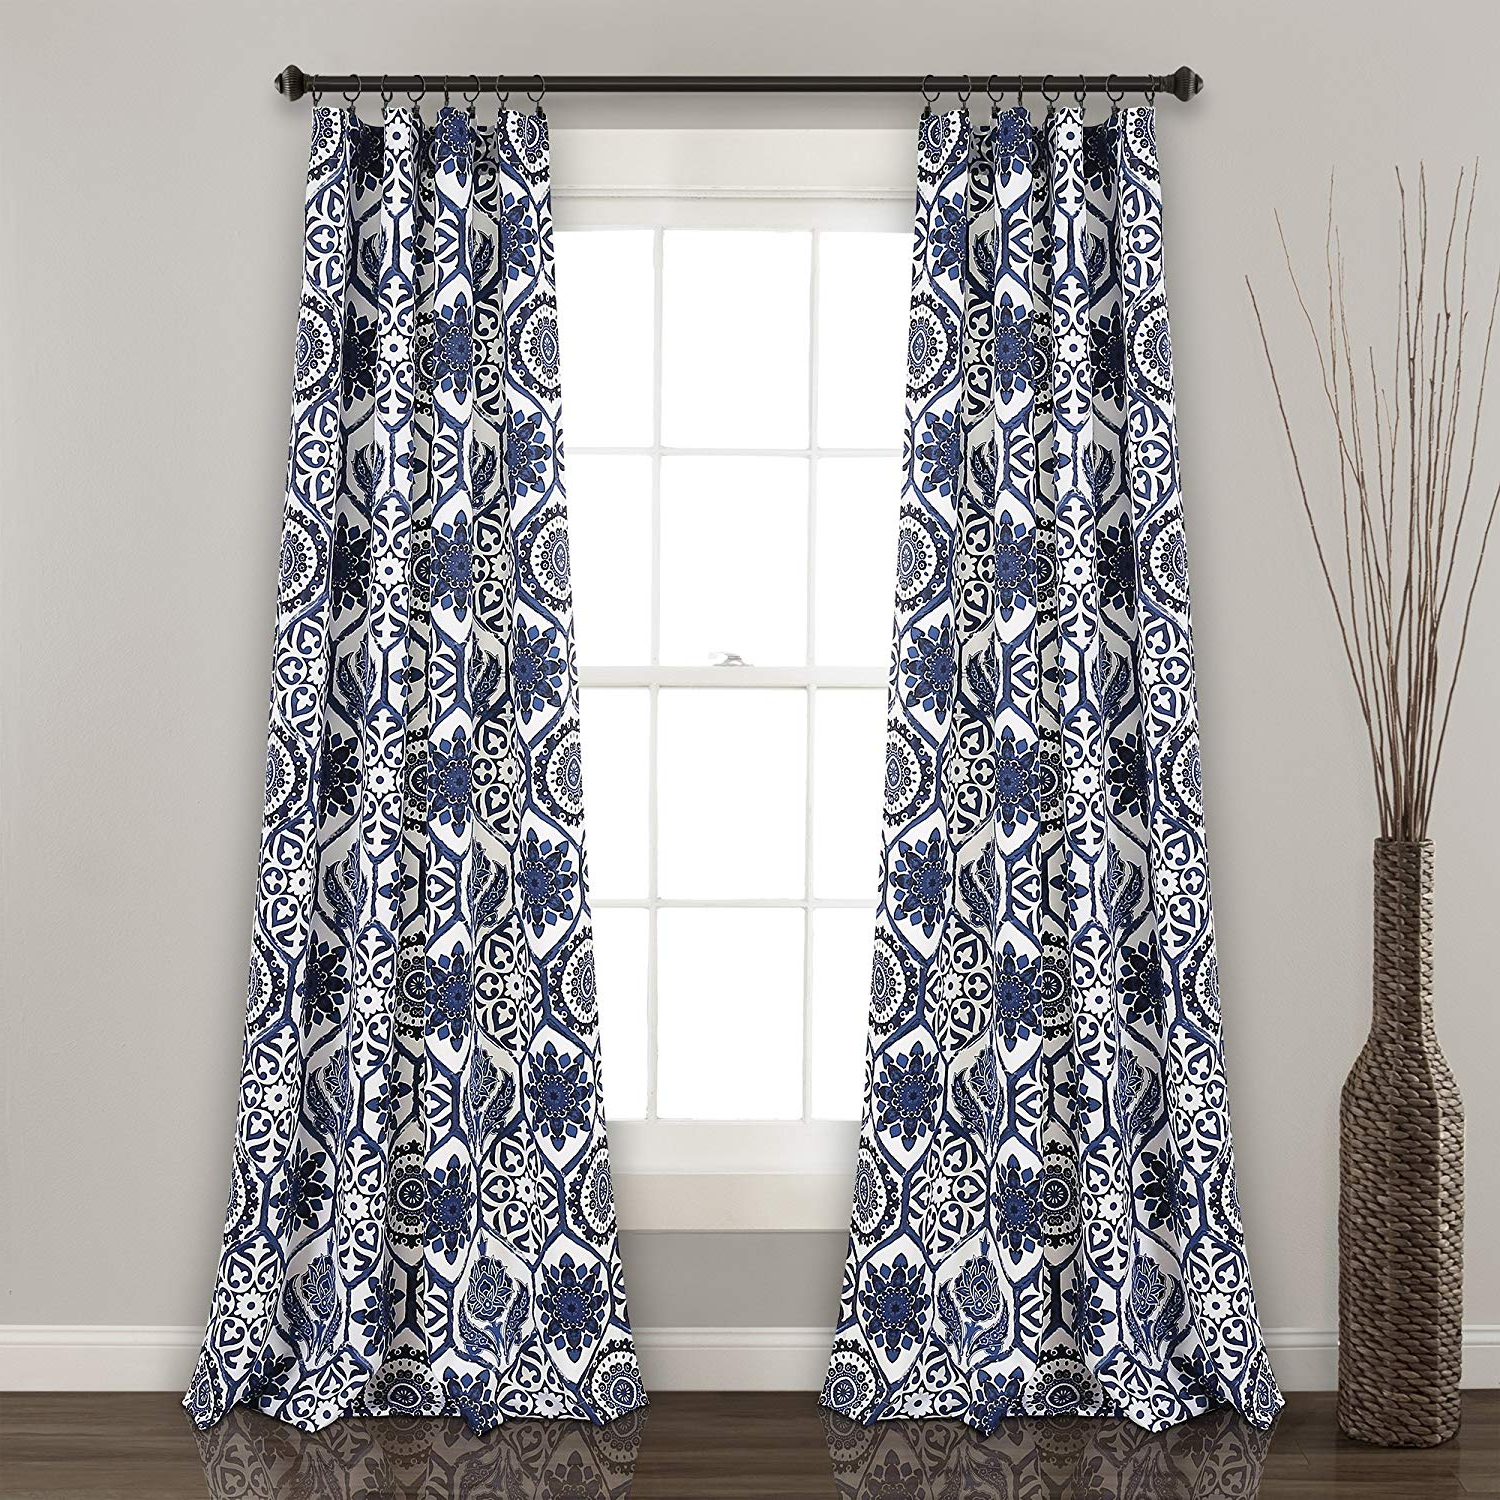 "Lush Decor Marvel Room Darkening Window Curtain Panel Pair, 84"" X 52"", Navy In Newest Cynthia Jacobean Room Darkening Curtain Panel Pairs (View 18 of 20)"